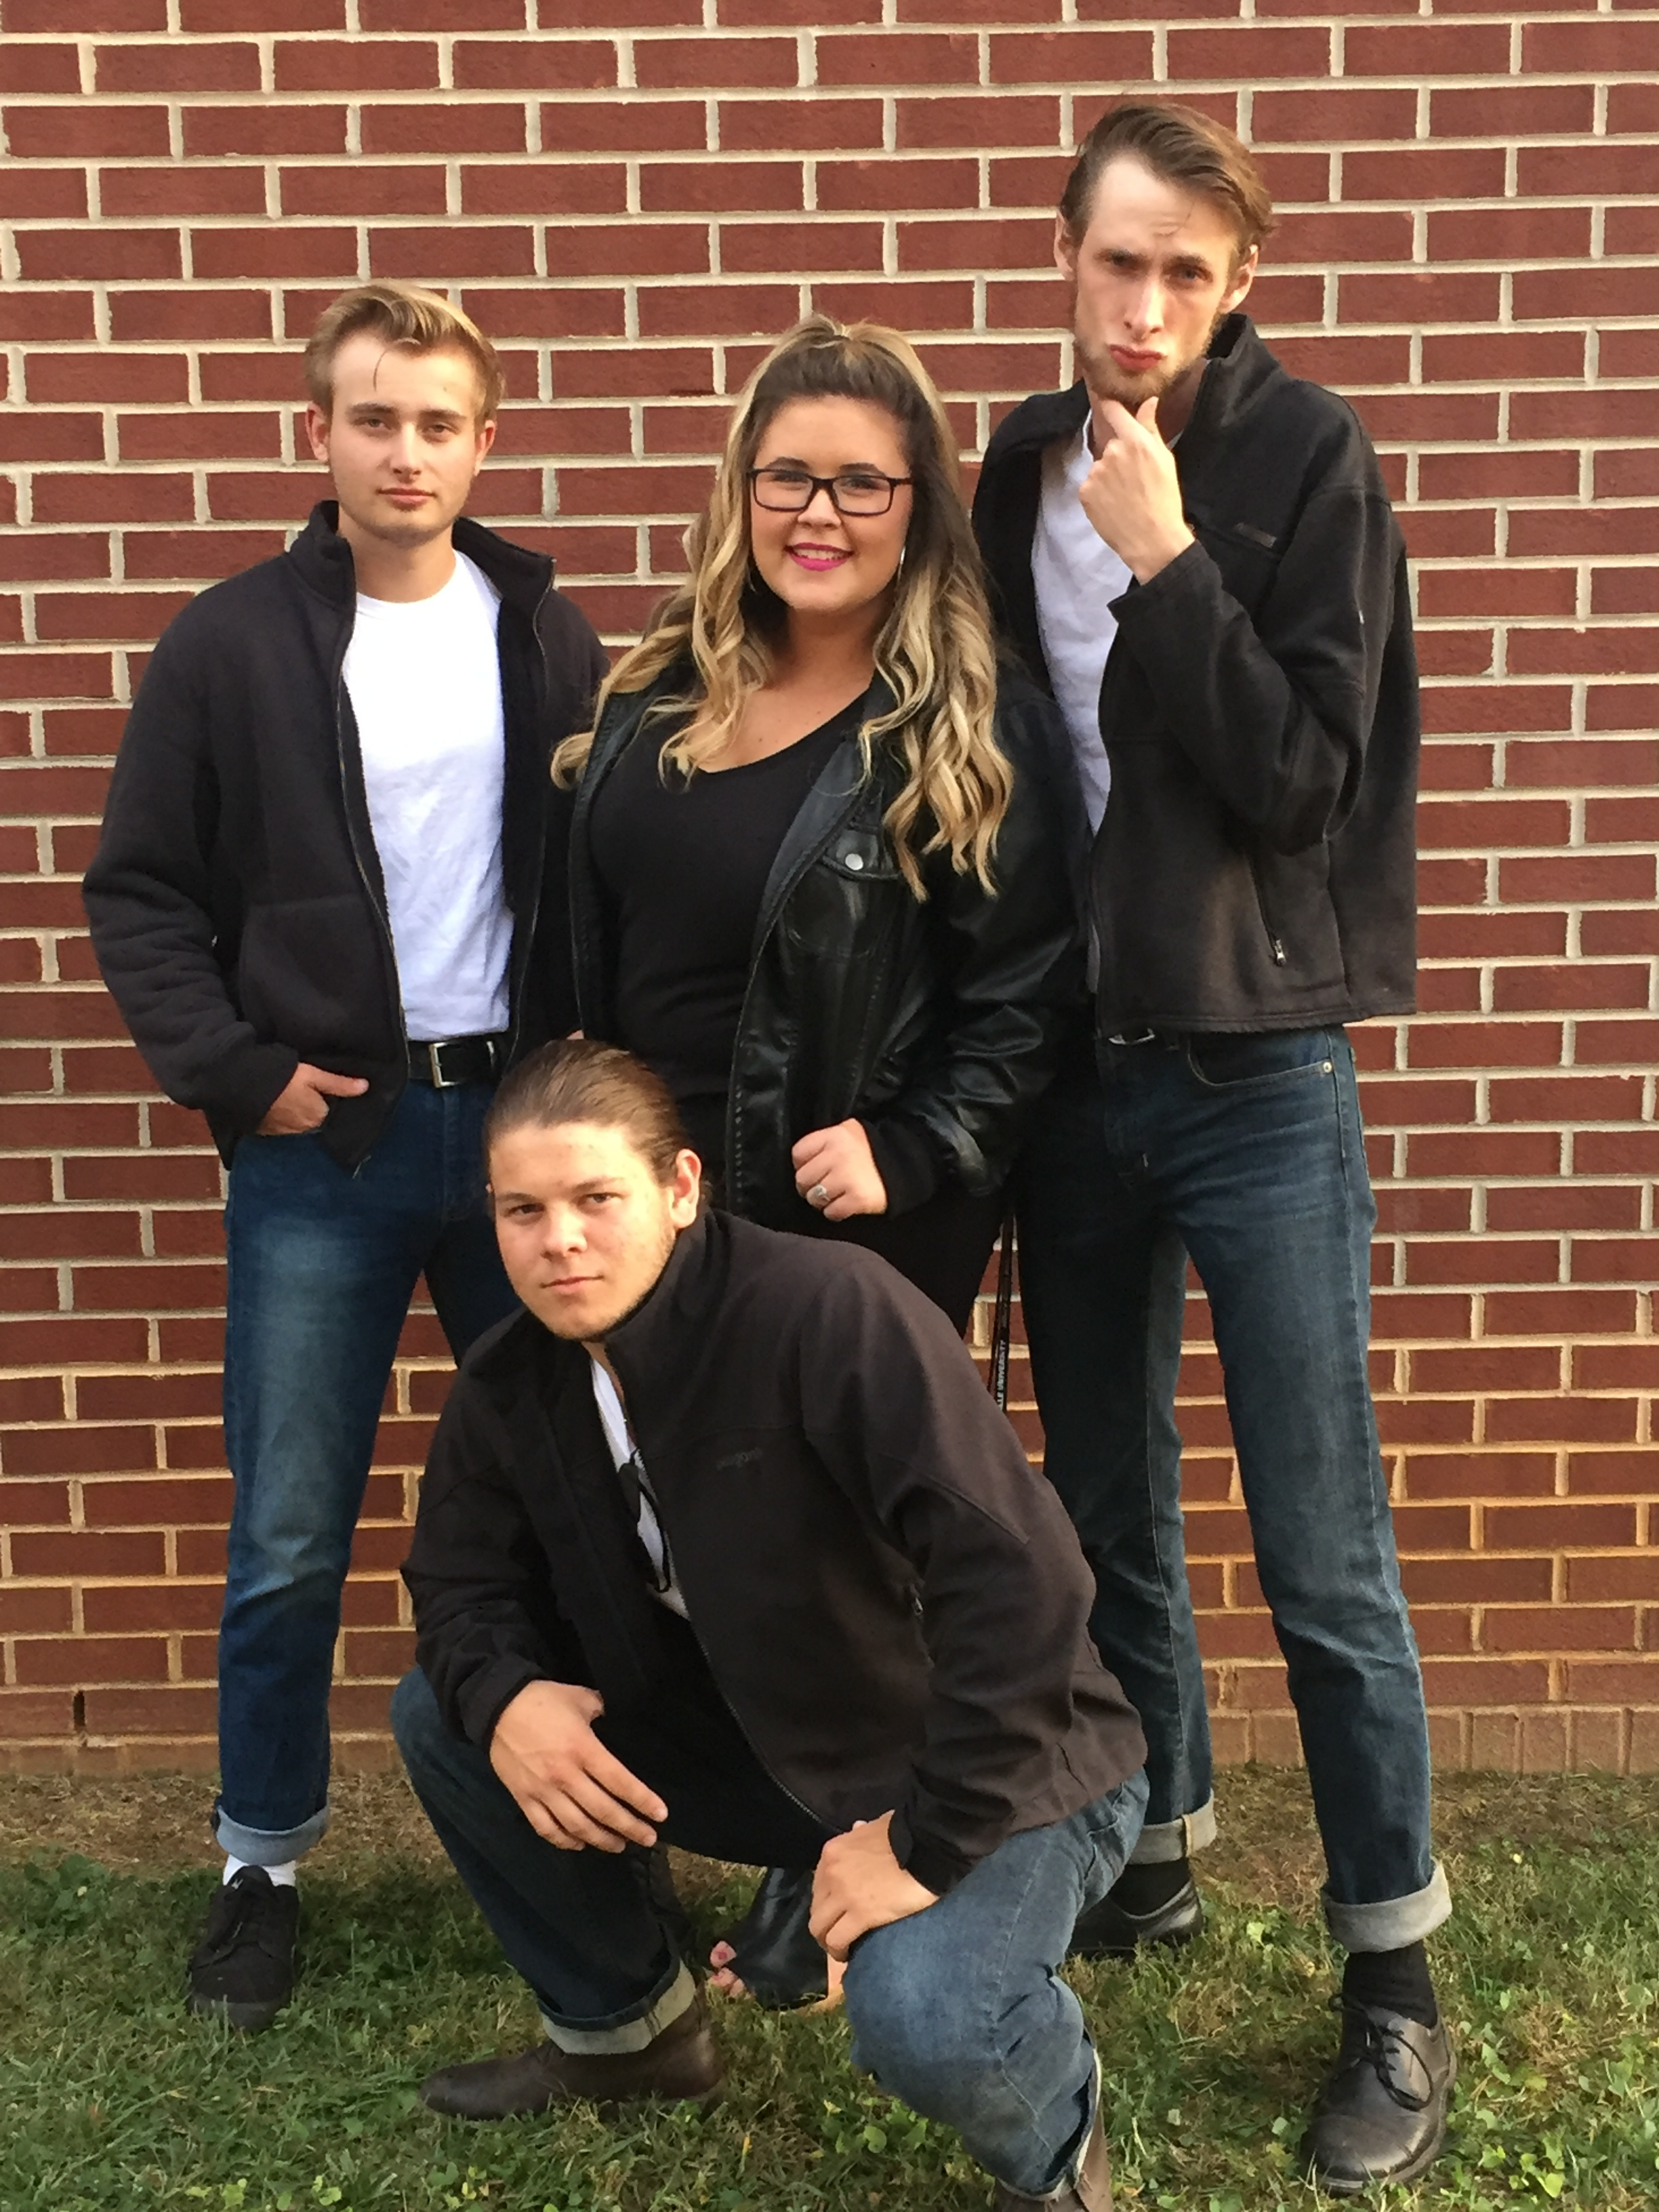 Ross Smith (junior), Andrew Kneece (junior), Cameron Burroughs (junior), and Cody Pendarvis (junior) dress as characters from the movie Grease.